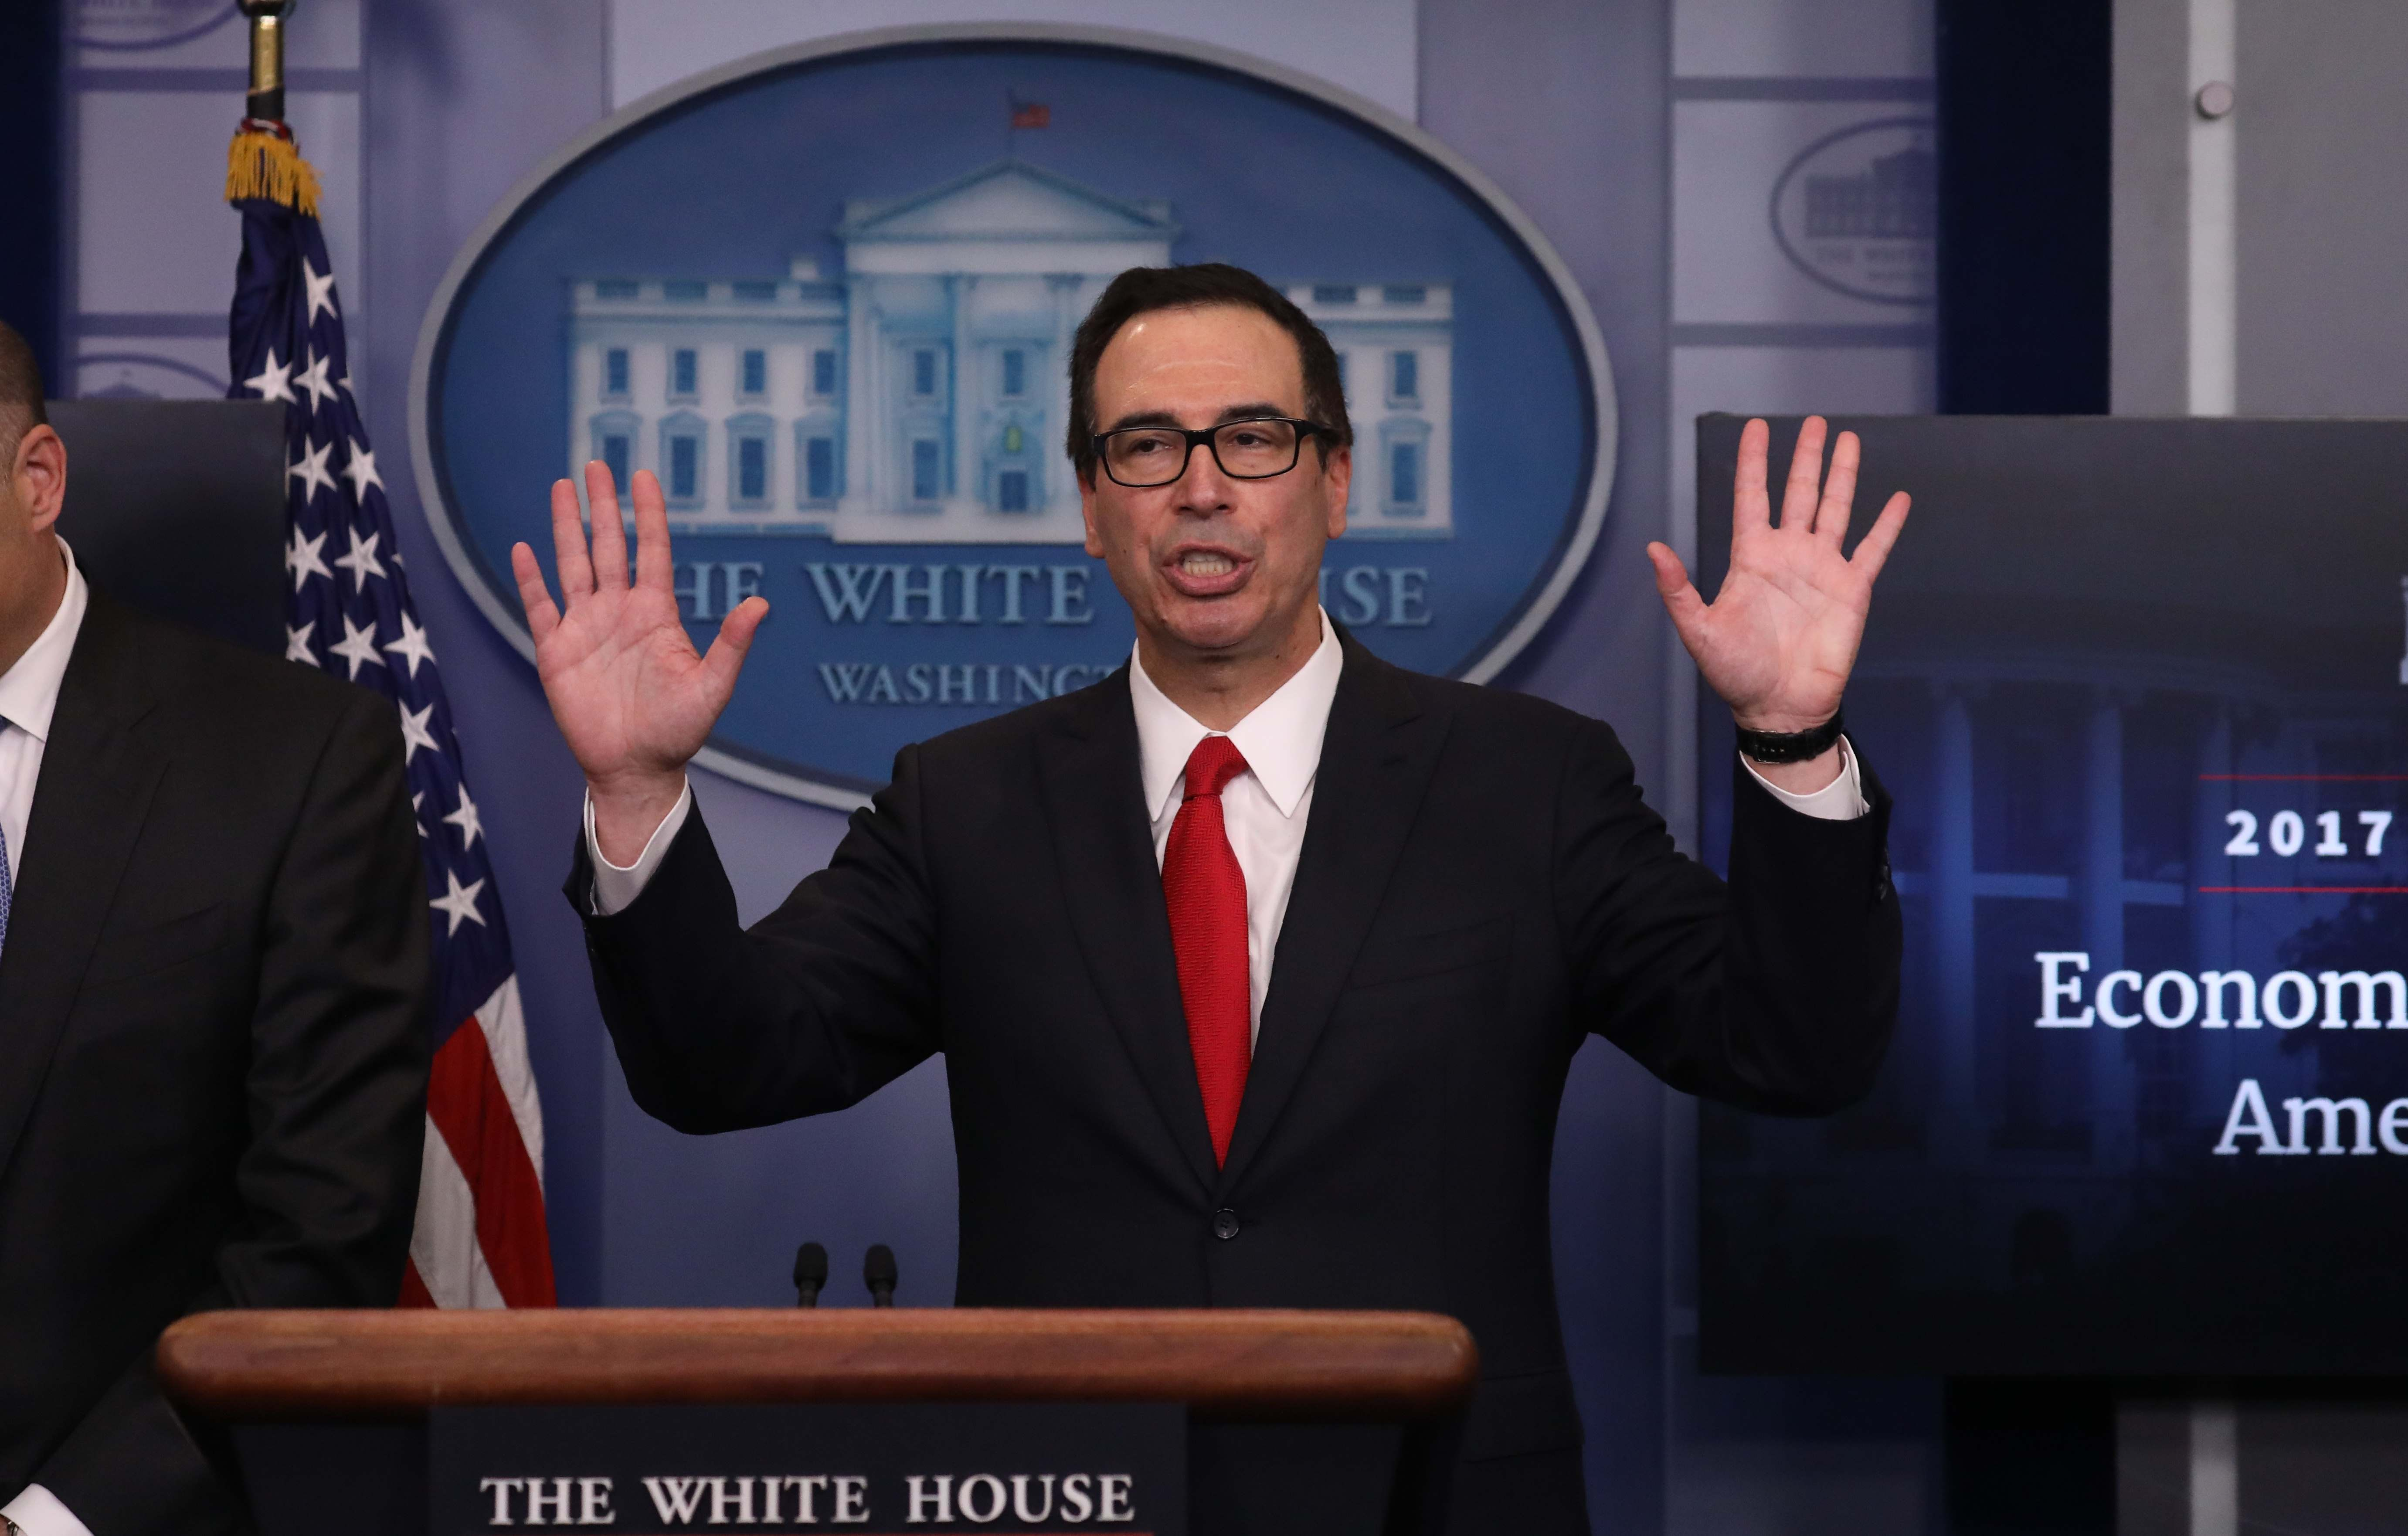 Treasury Secretary Steven Mnuchin ends a briefing after unveiling the Trump administration's tax reform proposal in the White House briefing room in Washington on April 26, 2017. (REUTERS/Carlos Barria)